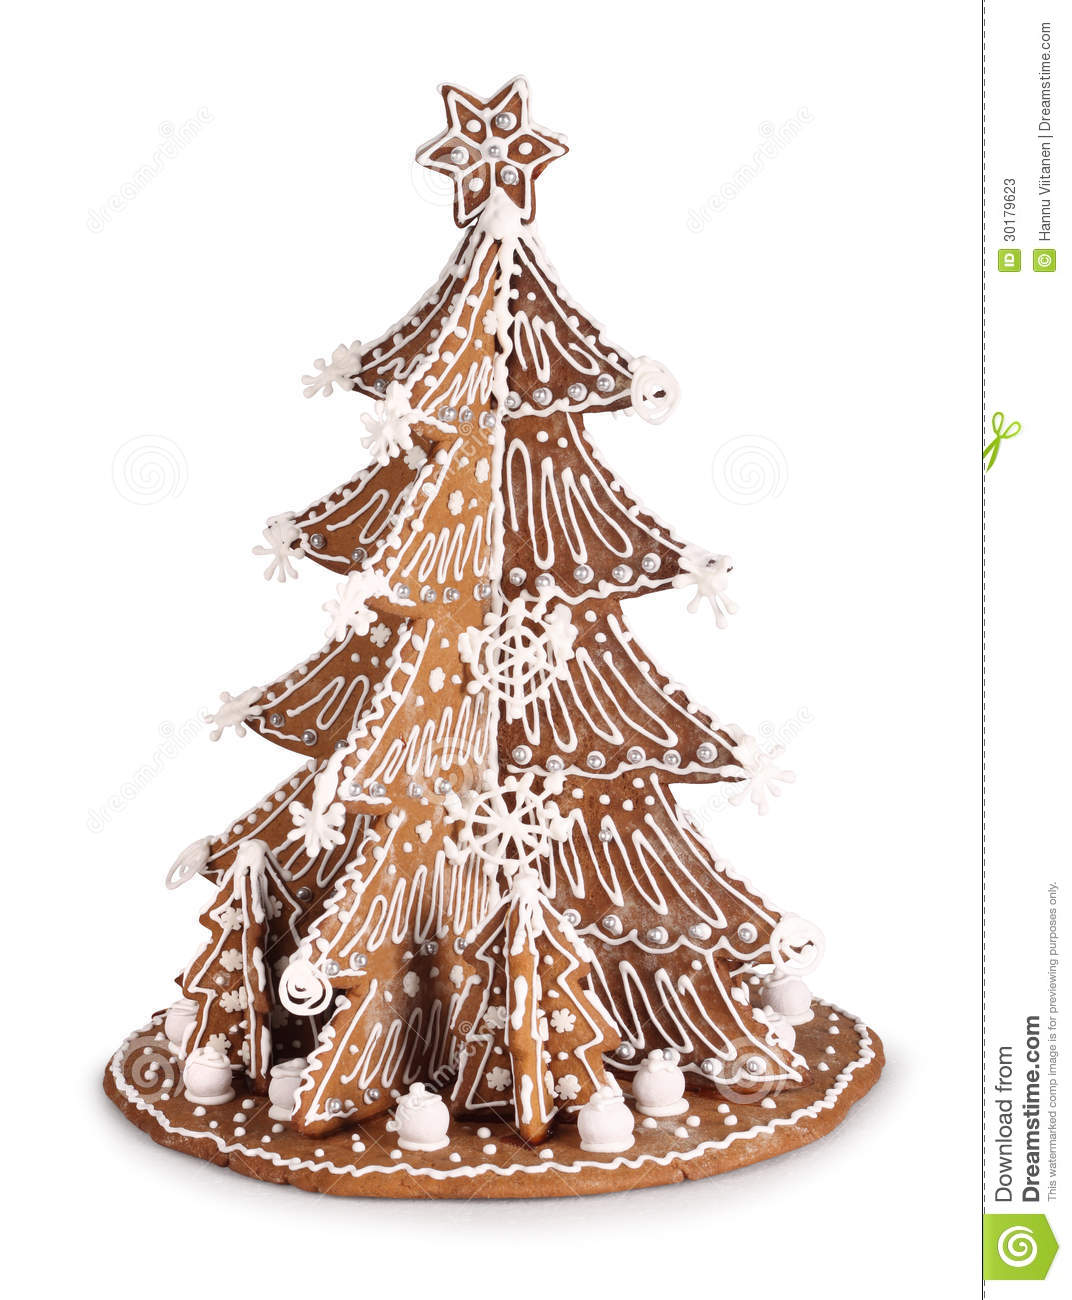 Baked Gingerbread Christmas tree decoration with sugar icing.